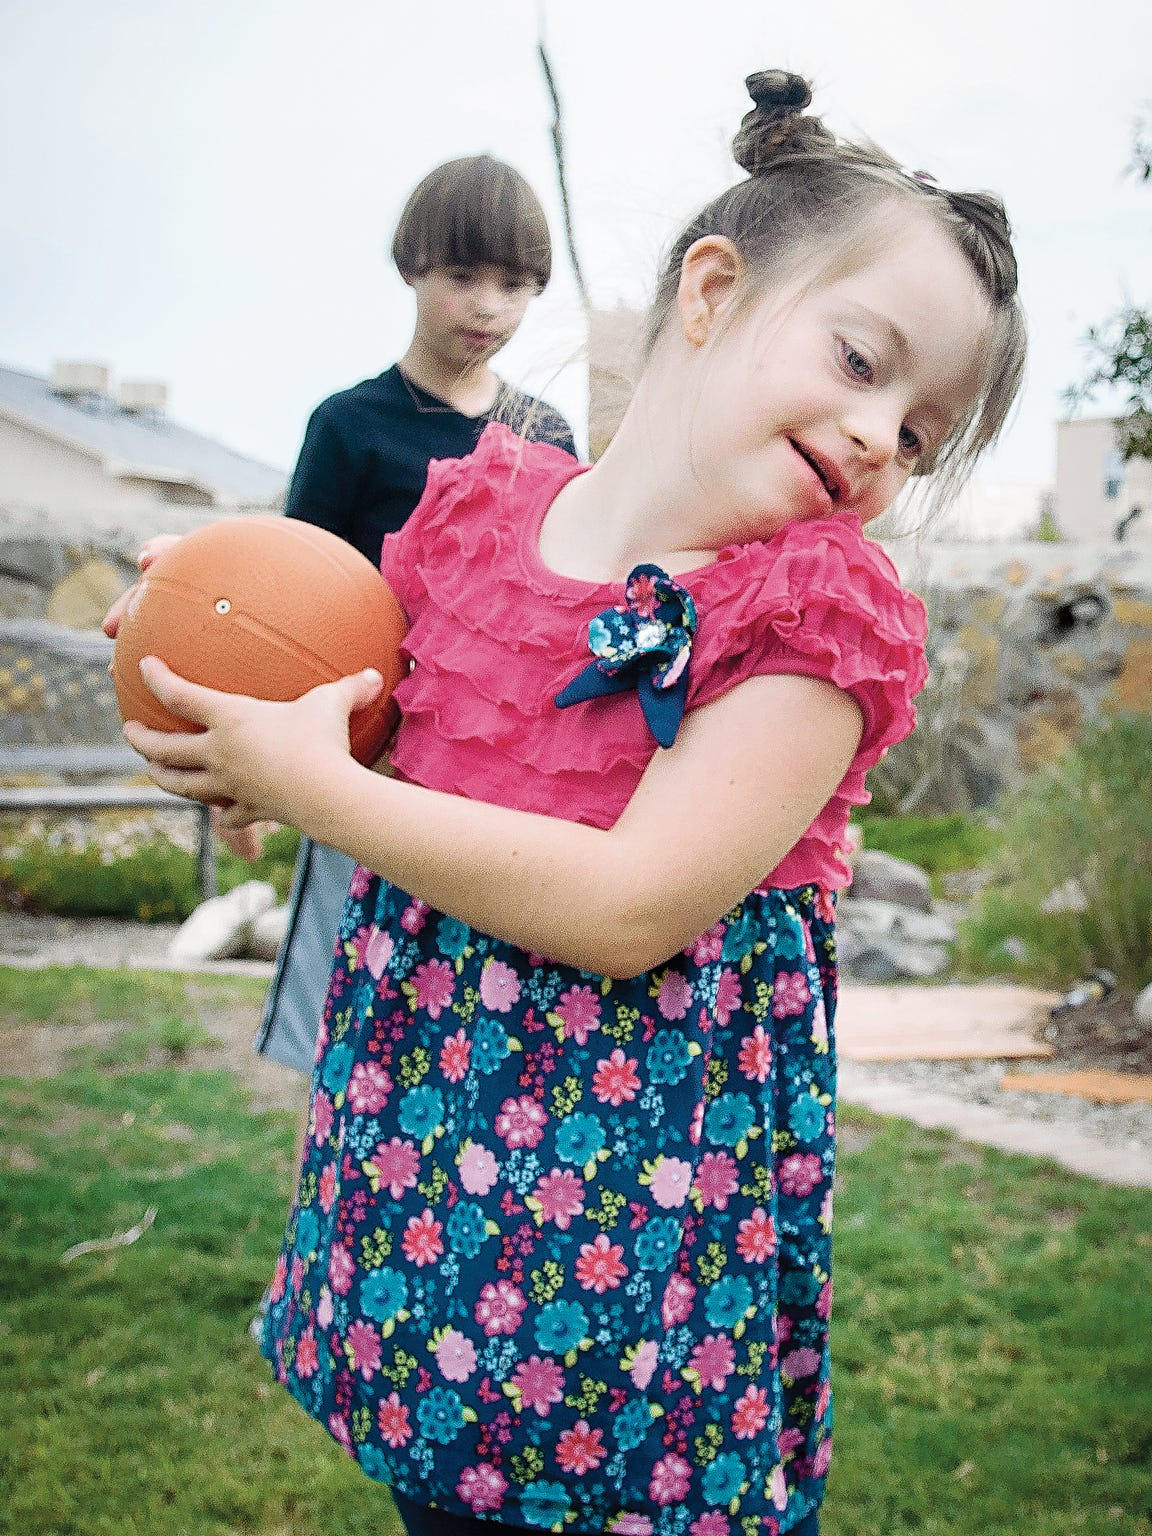 Pictured is 7-year-old Molly Hathway, the daughter of Jon and Lori Hathway of Las Cruces, who help guide the Southern New Mexico Down Syndrome Families organization.